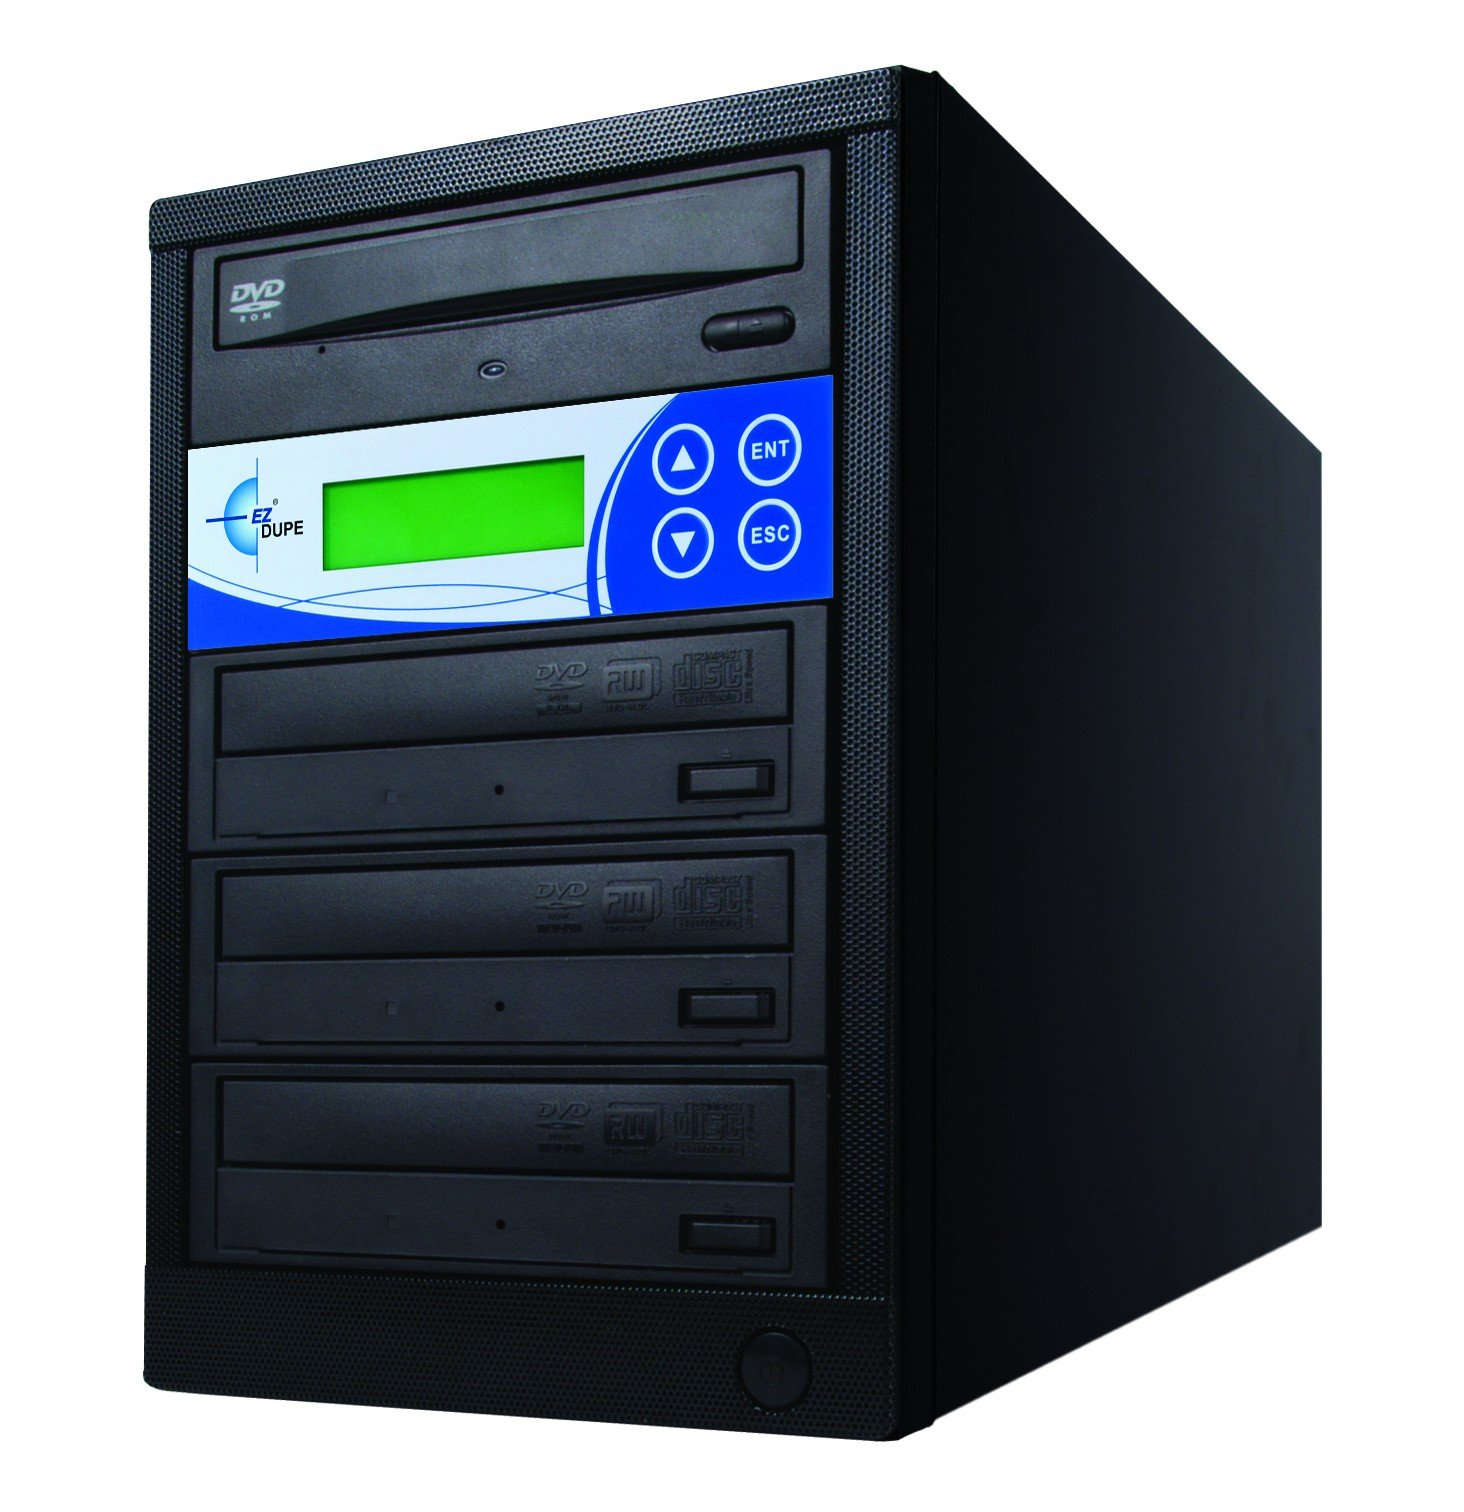 EZ Dupe 3-Target DVD/CD 24X Duplicator GS3SOB Black